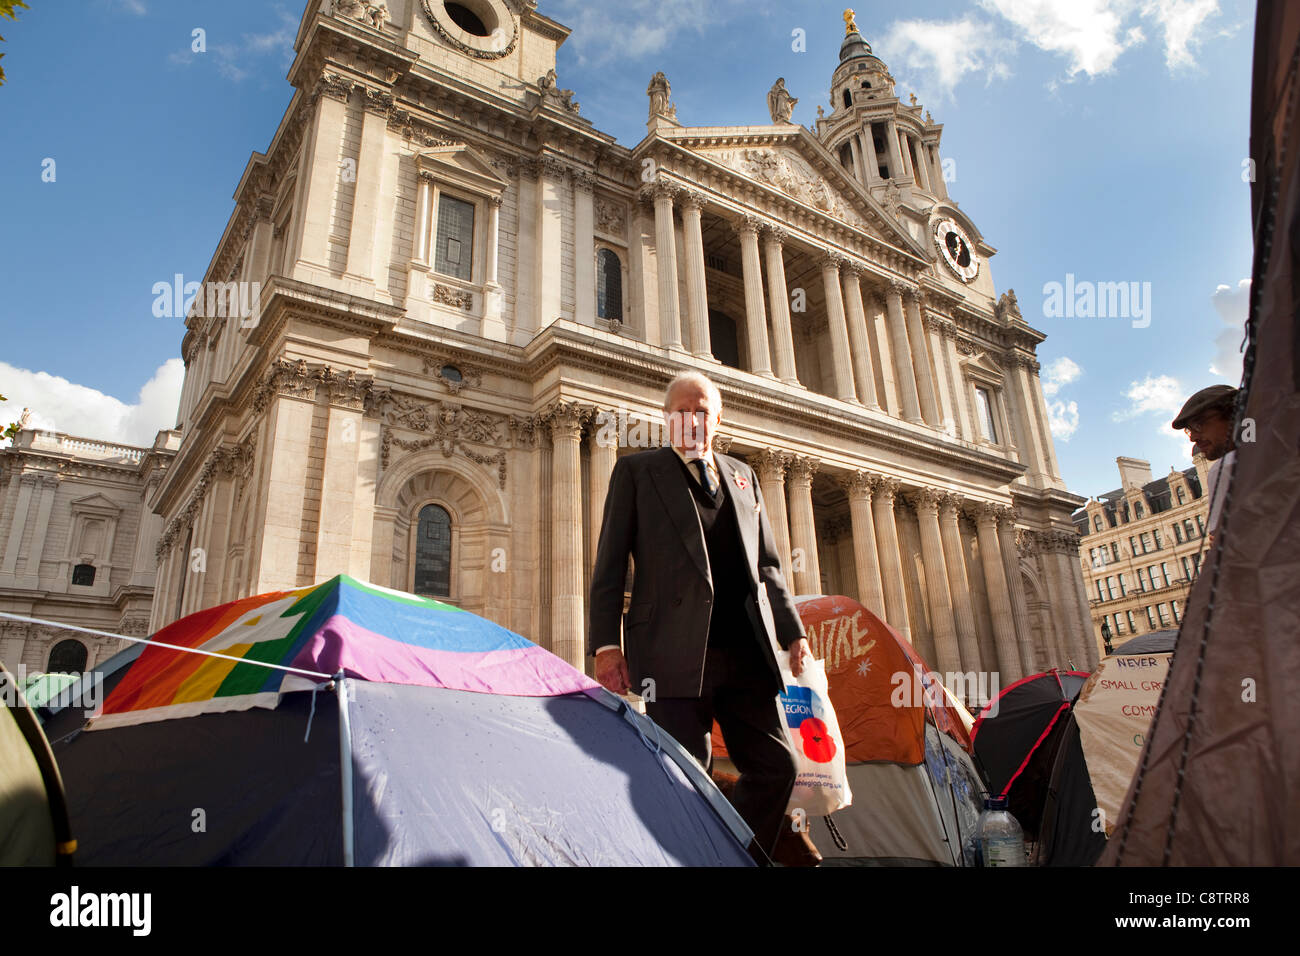 Outside St Paul's Cathedral in London. The camp of the anti-capitalist protesters near to London's stock - Stock Image